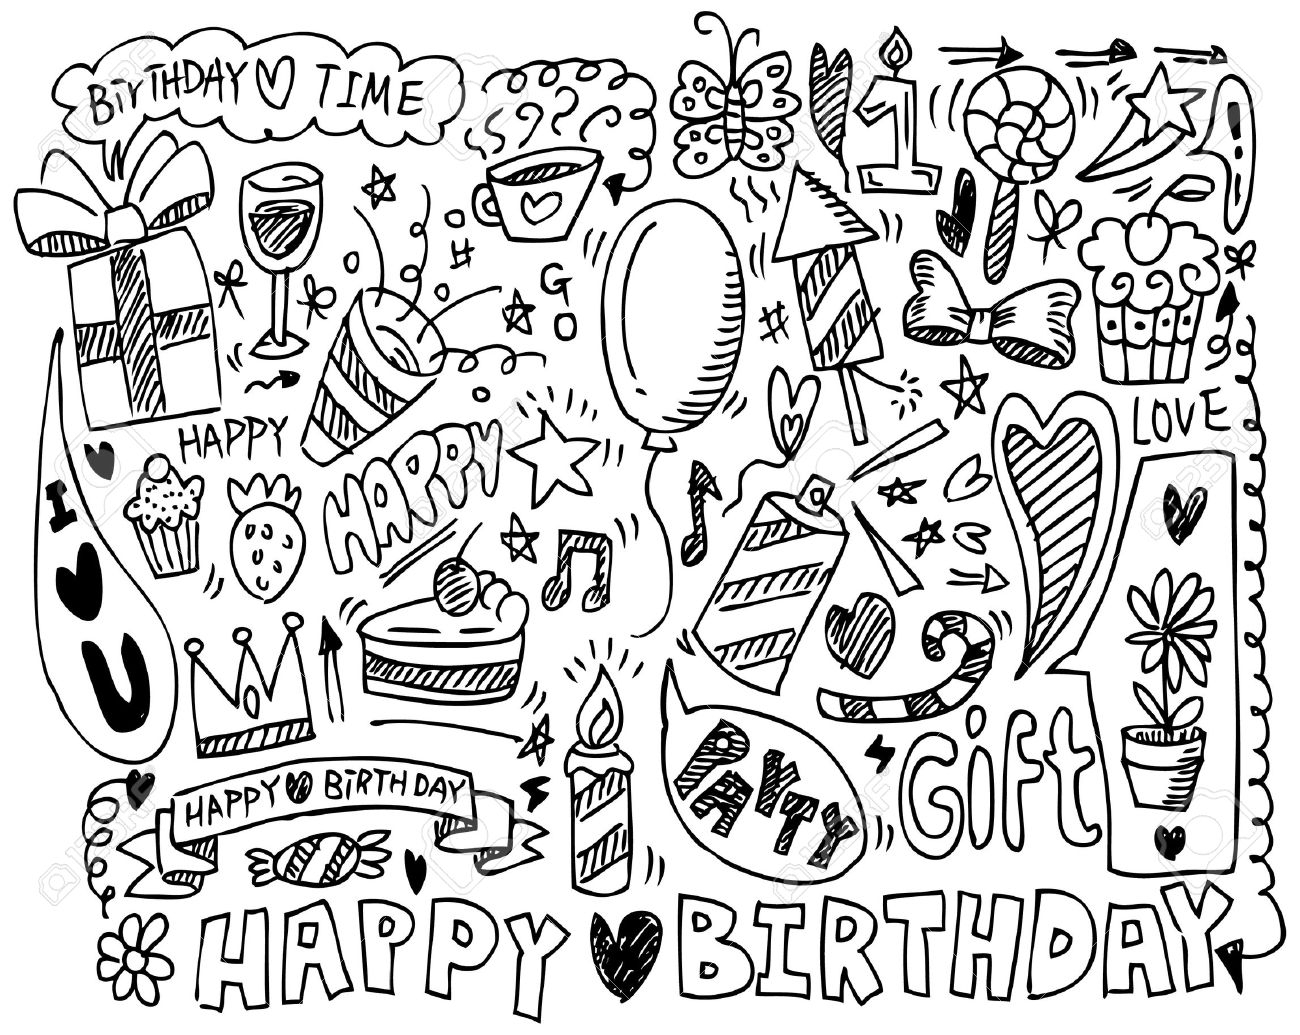 drawing of birthday celebration ; drawing-pictures-of-birthday-party-hand-draw-birthday-element-royalty-free-cliparts-vectors-and